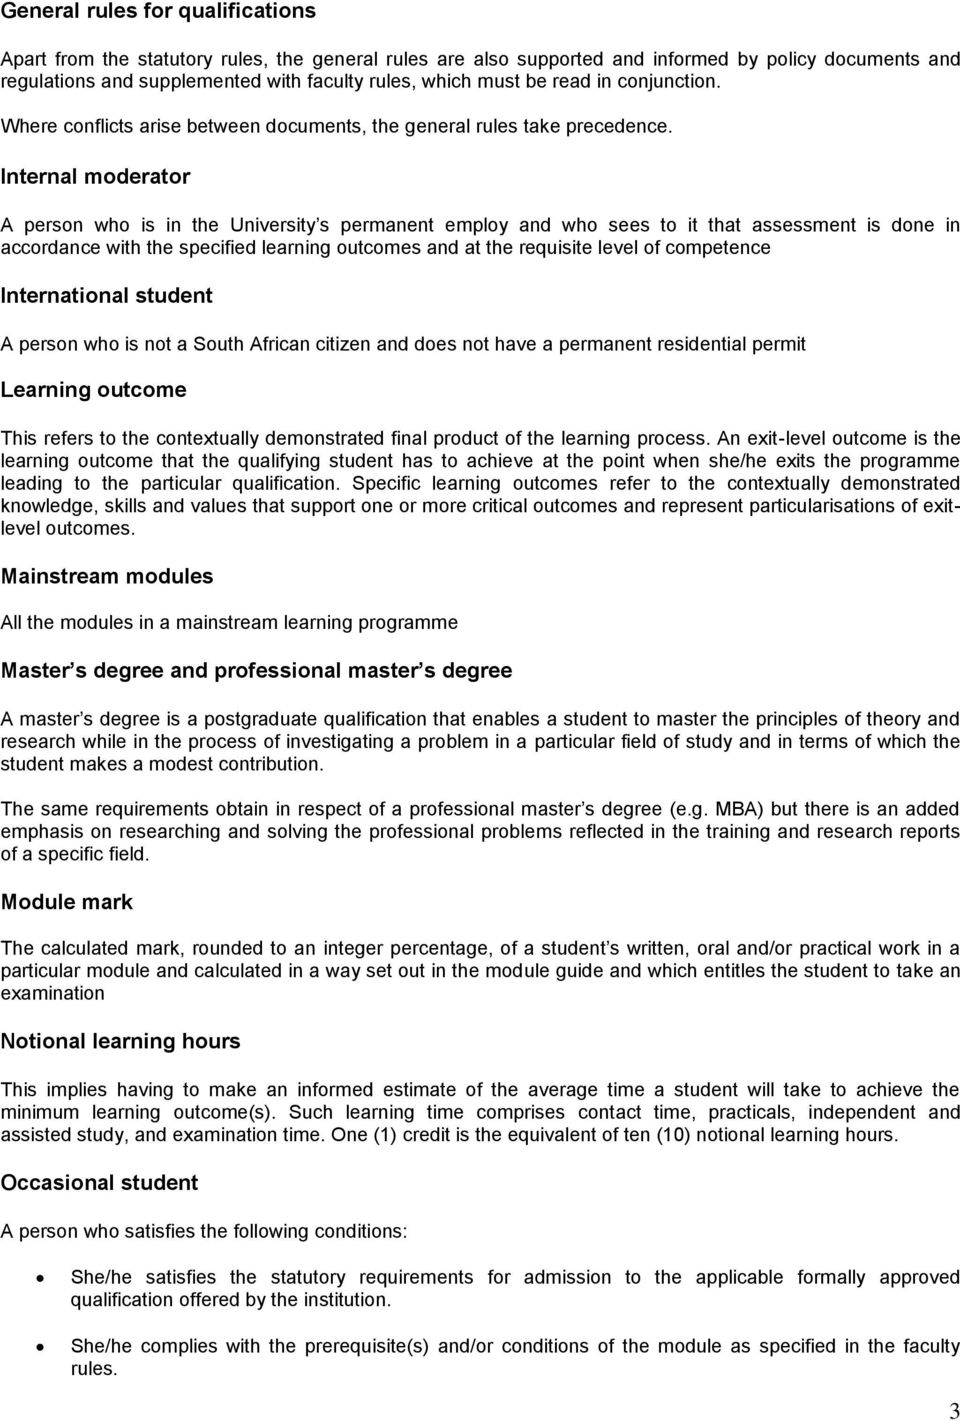 Internal moderator A person who is in the University s permanent employ and who sees to it that assessment is done in accordance with the specified learning outcomes and at the requisite level of